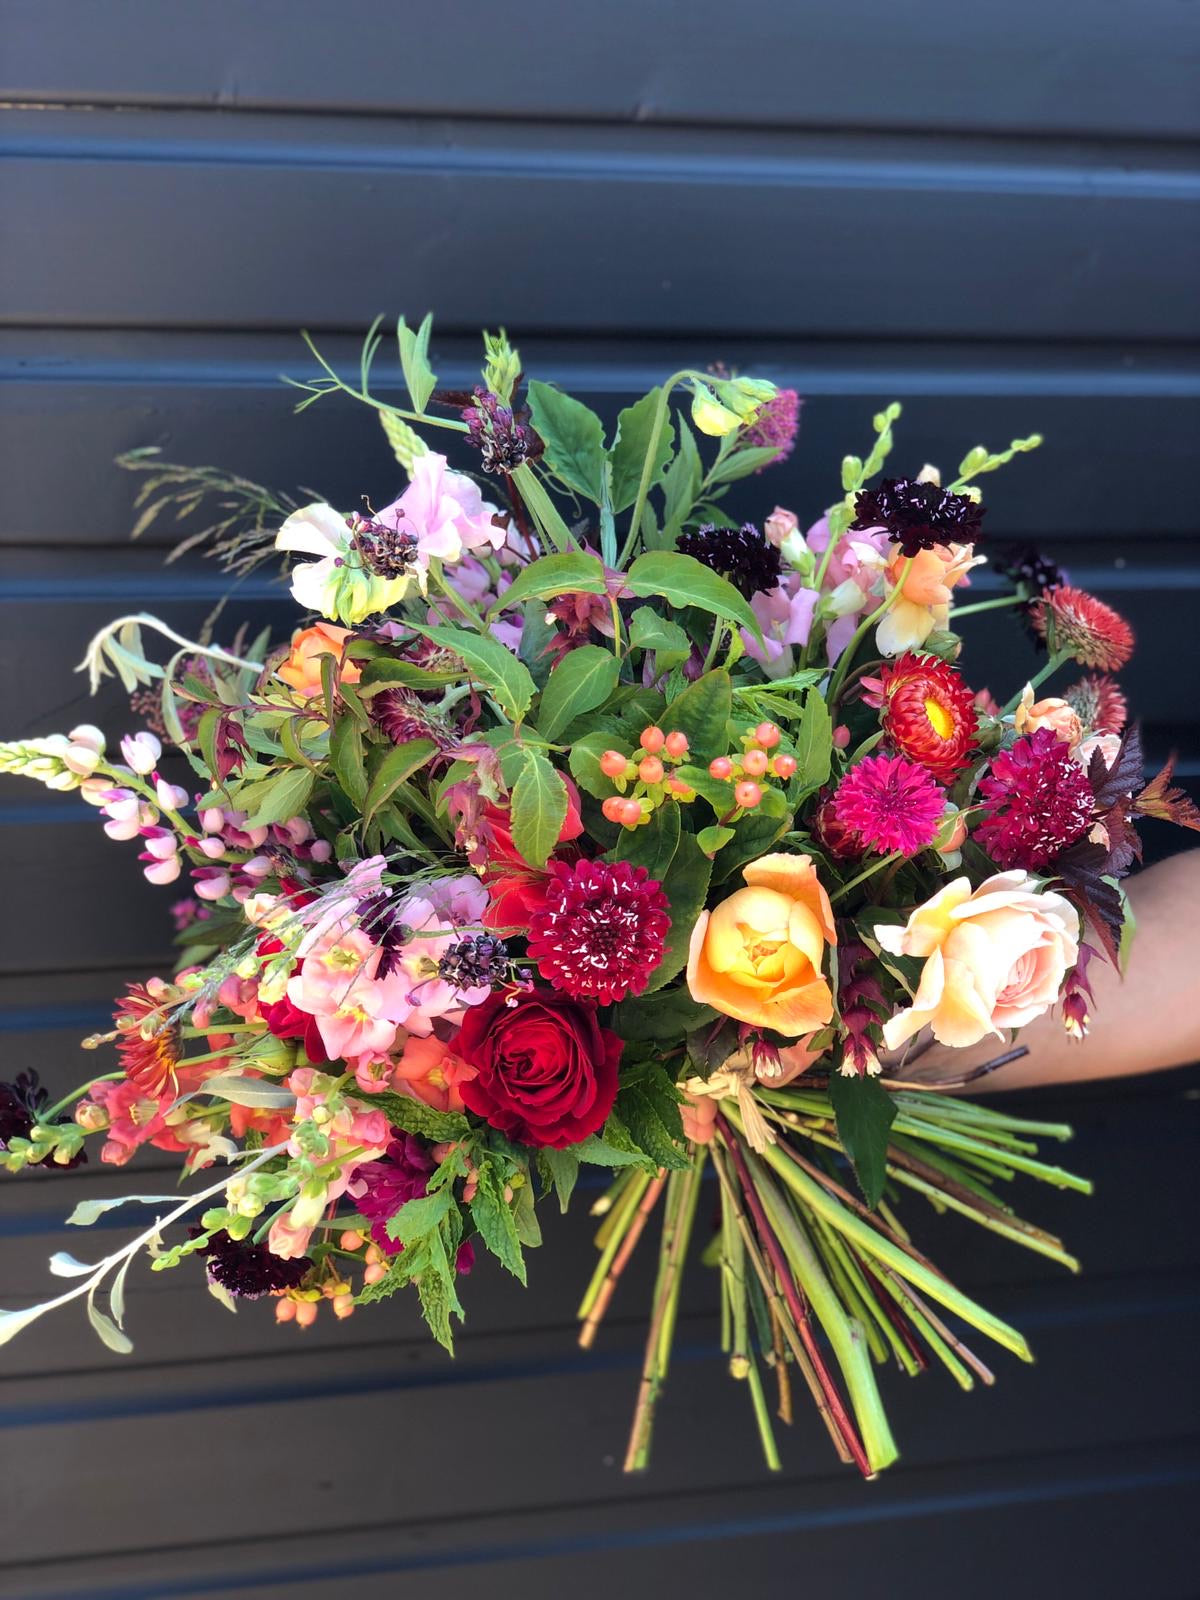 Seasonal Giant bouquet